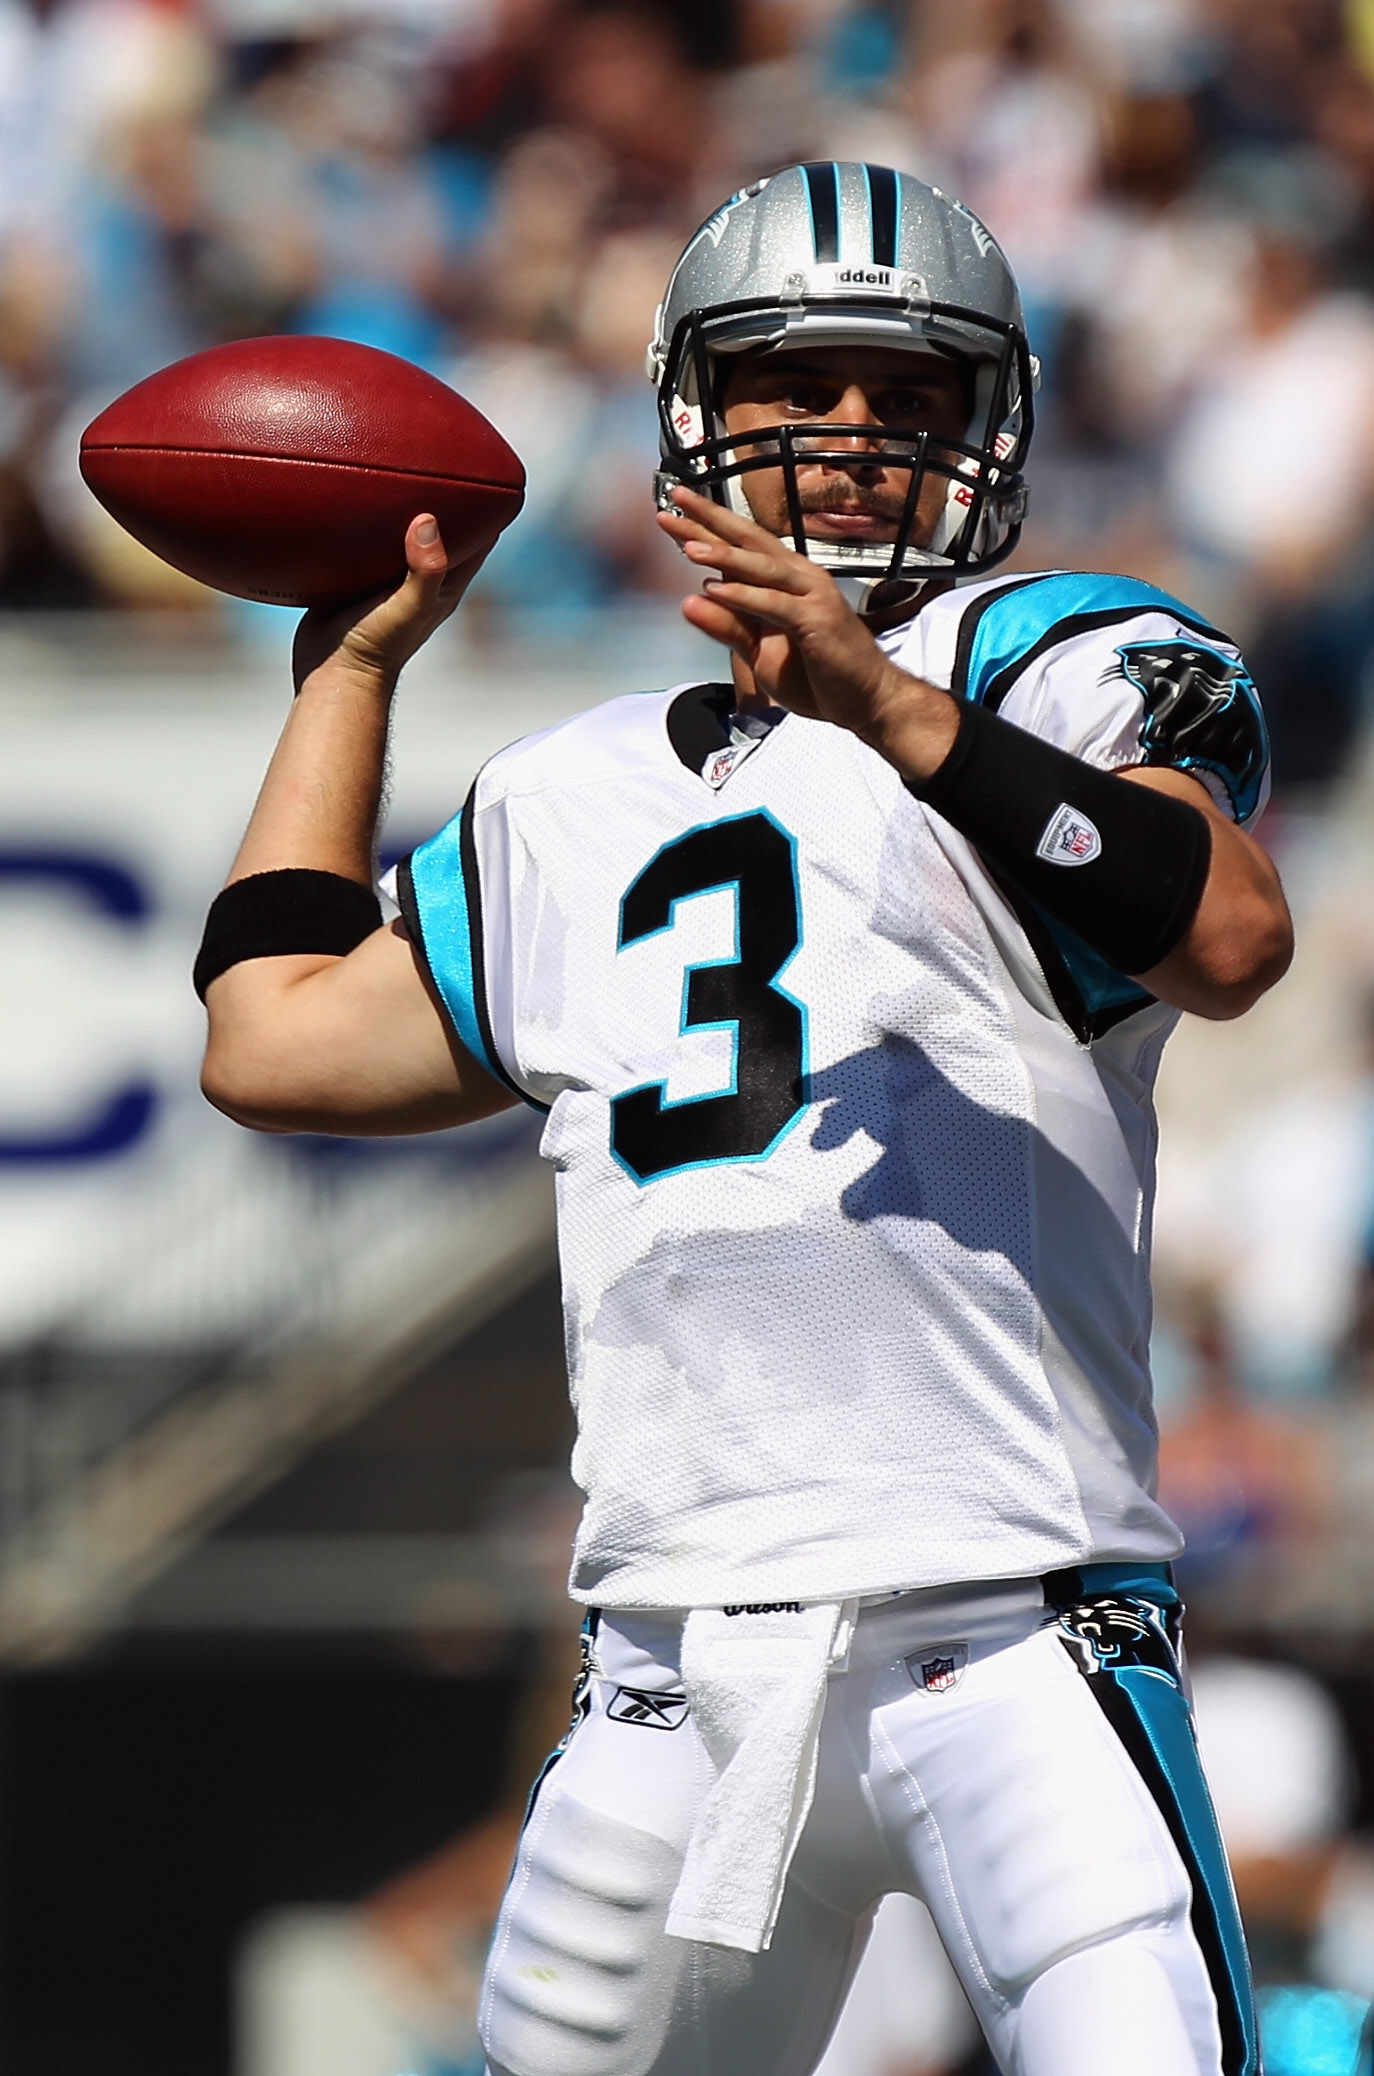 CHARLOTTE, NC - SEPTEMBER 19:  Matt Moore #3 of the Carolina Panthers drops back to throw a pass during their game against the Tampa Bay Buccaneers at Bank of America Stadium on September 19, 2010 in Charlotte, North Carolina.  (Photo by Streeter Lecka/Ge